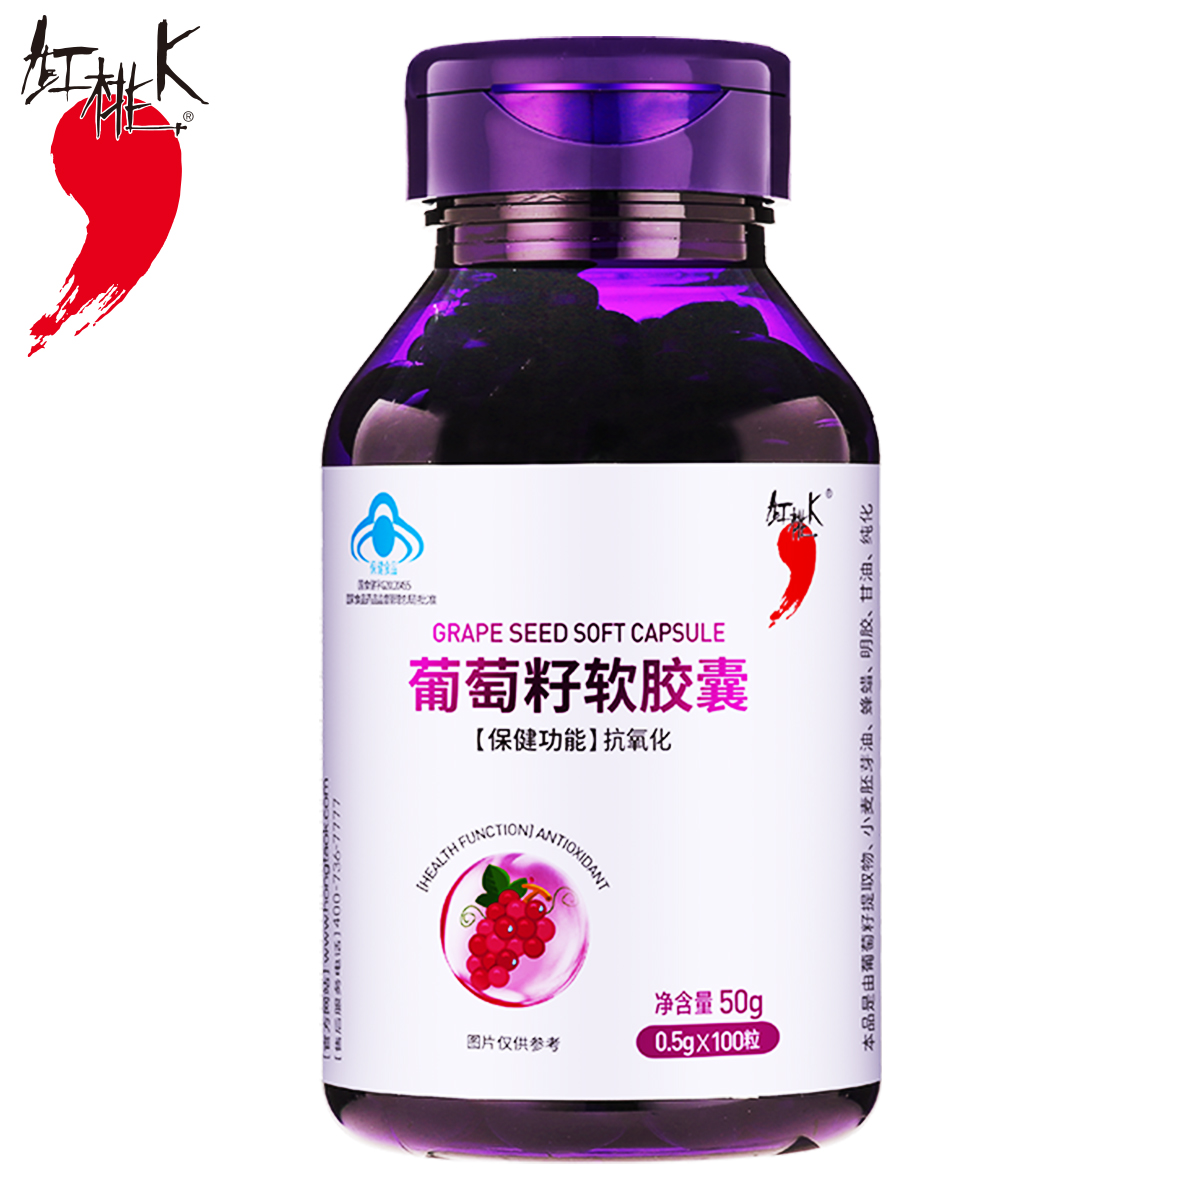 Red peach K green forest grape seed soft capsule 0 5g grain*100 grain grape seed essence proanthocyanidins